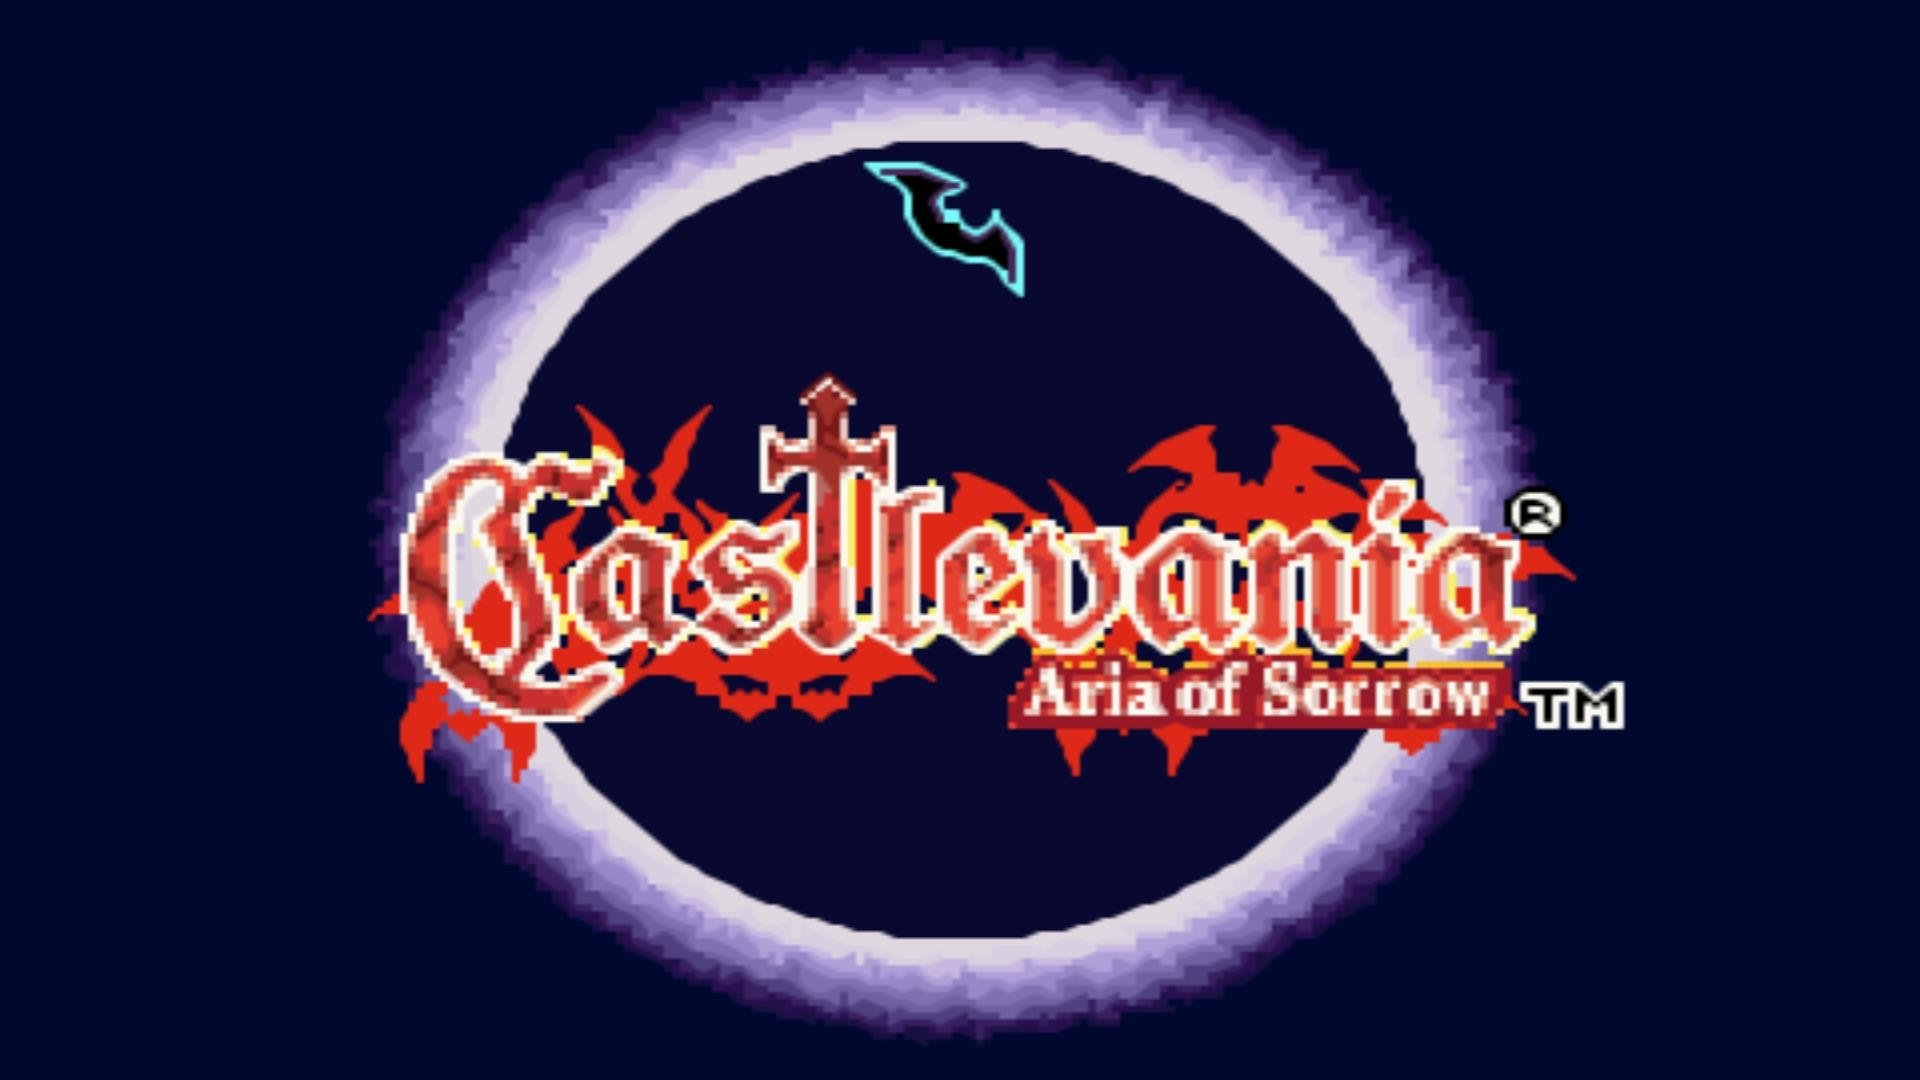 194 Castlevania Hd Wallpapers Background Images Wallpaper